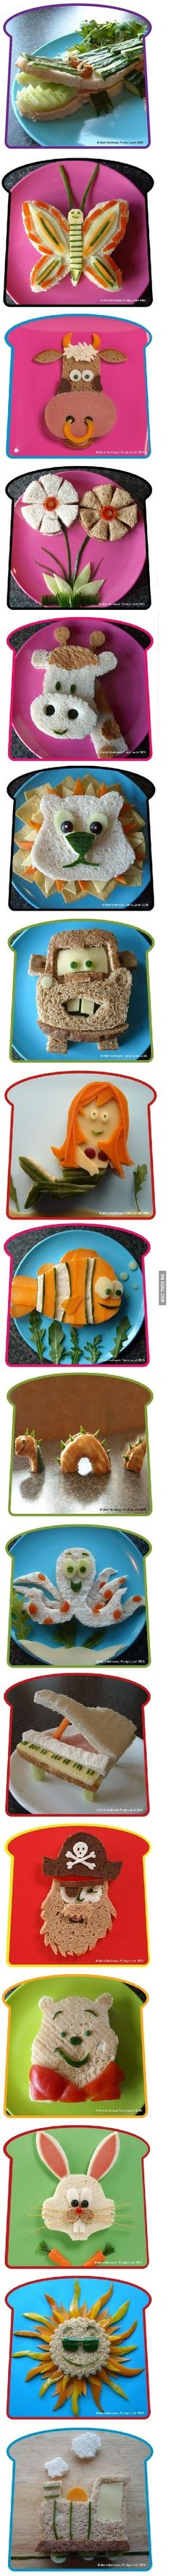 Parenting coaching _ It's all in the presentation - food art to inspire healthy eating - Kids - Bambini - Un modo creativo per indurre i bambini a mangiare in modo sano. Awesome kid lunch ideas